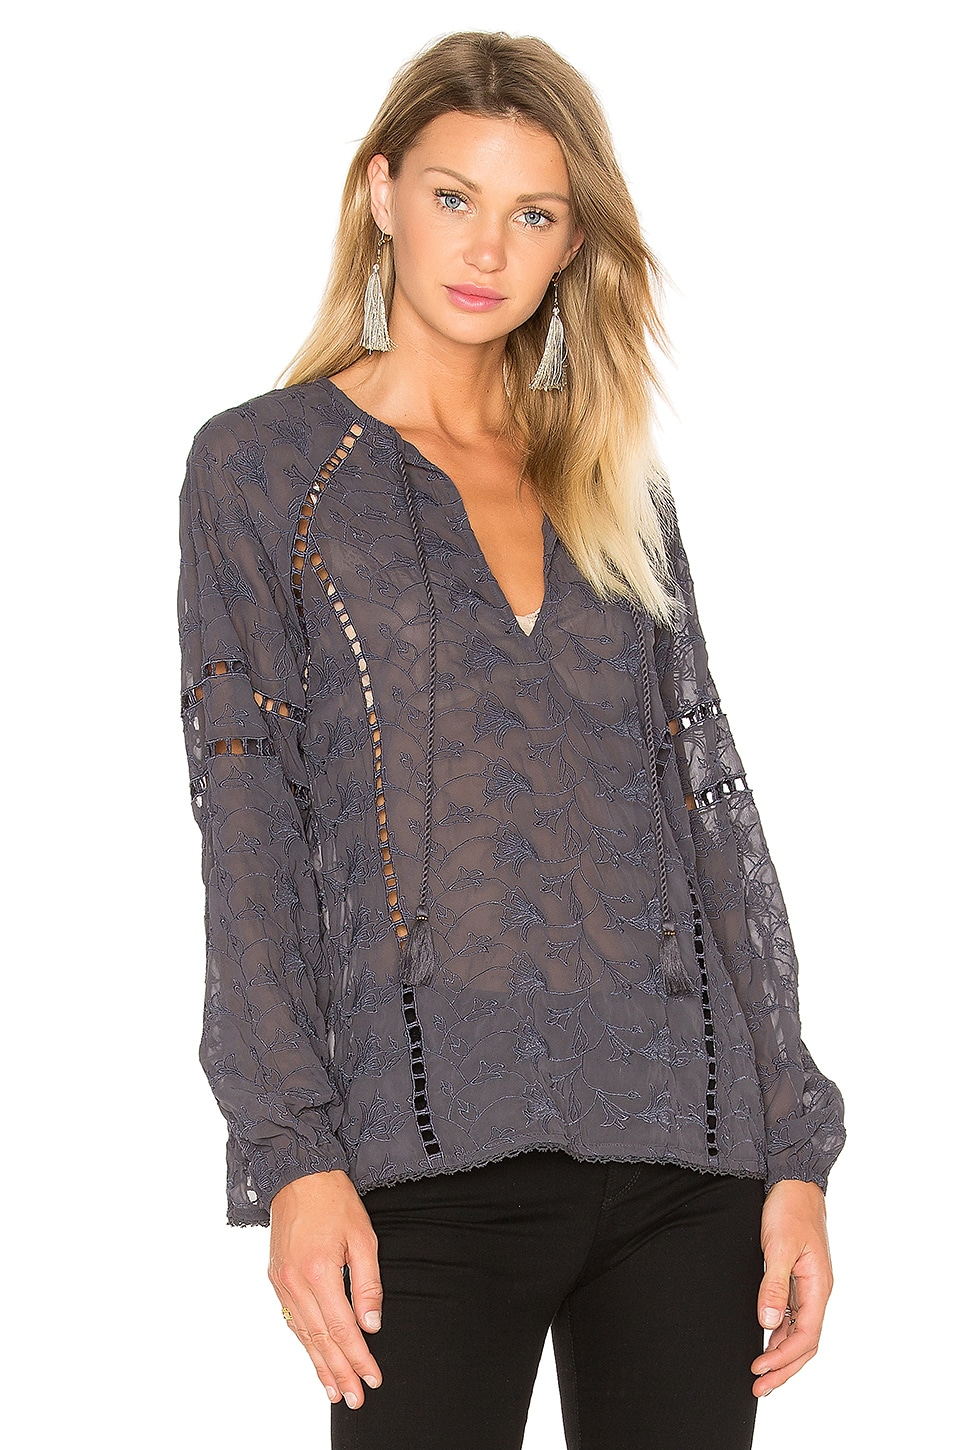 House of Harlow 1960 x REVOLVE Sophie V-Neck Blouse in Ash